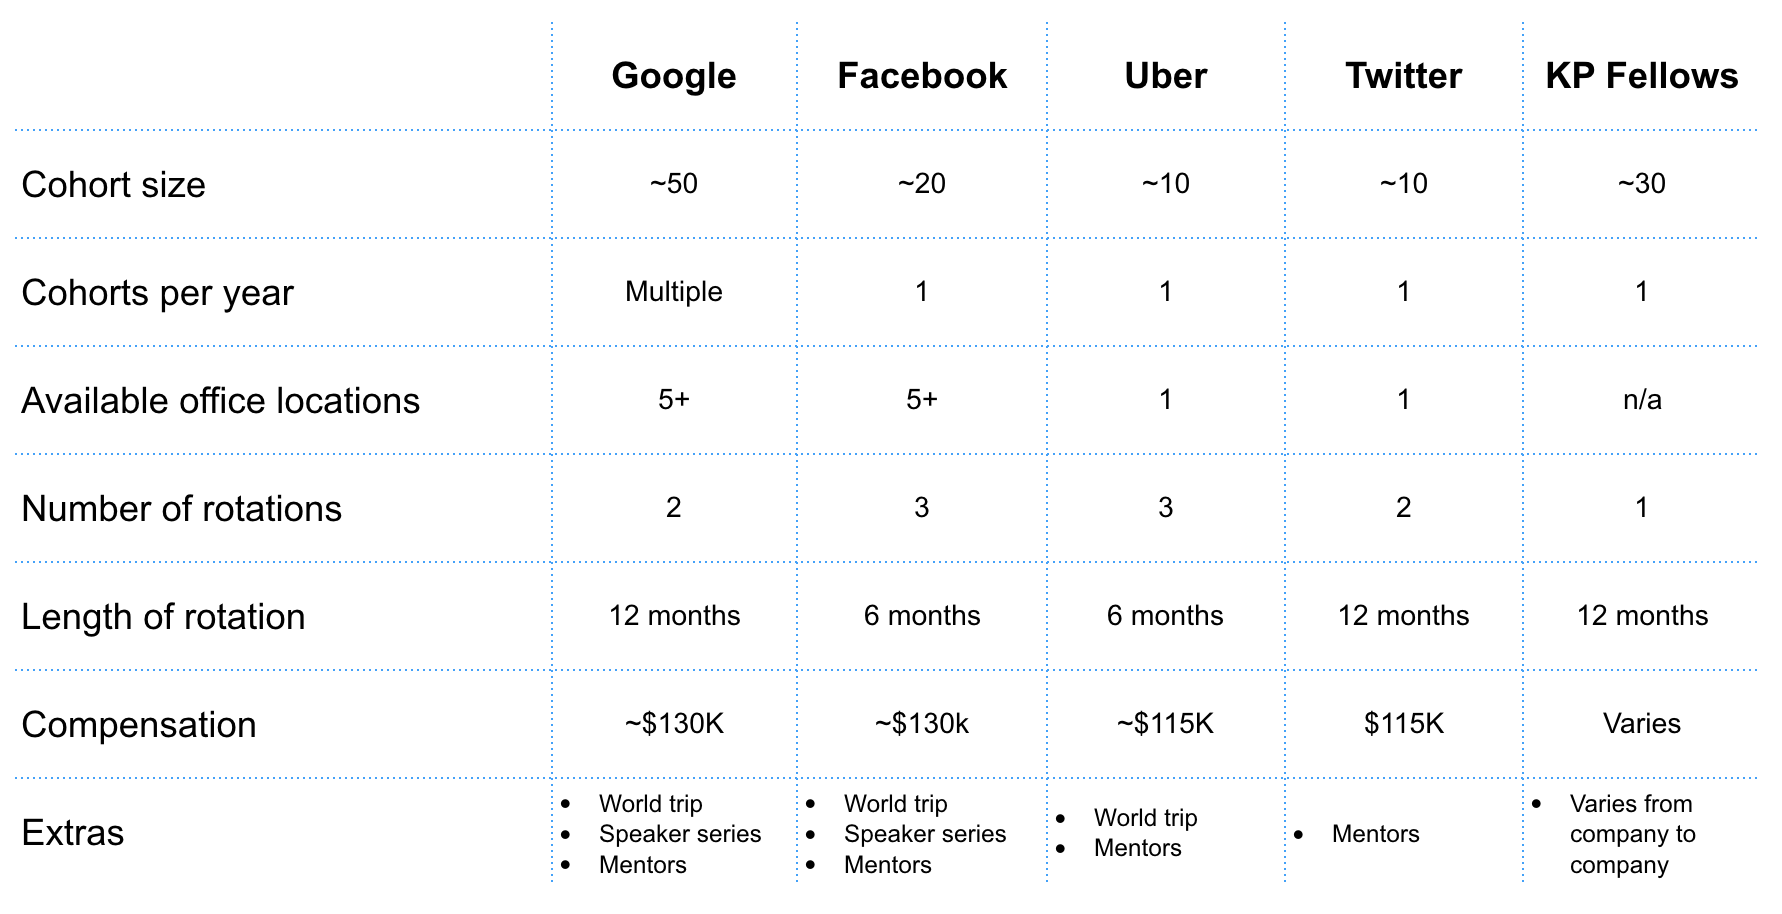 Comparison of APM programs from Google, Facebook, Uber, KP Fellows and Twitter